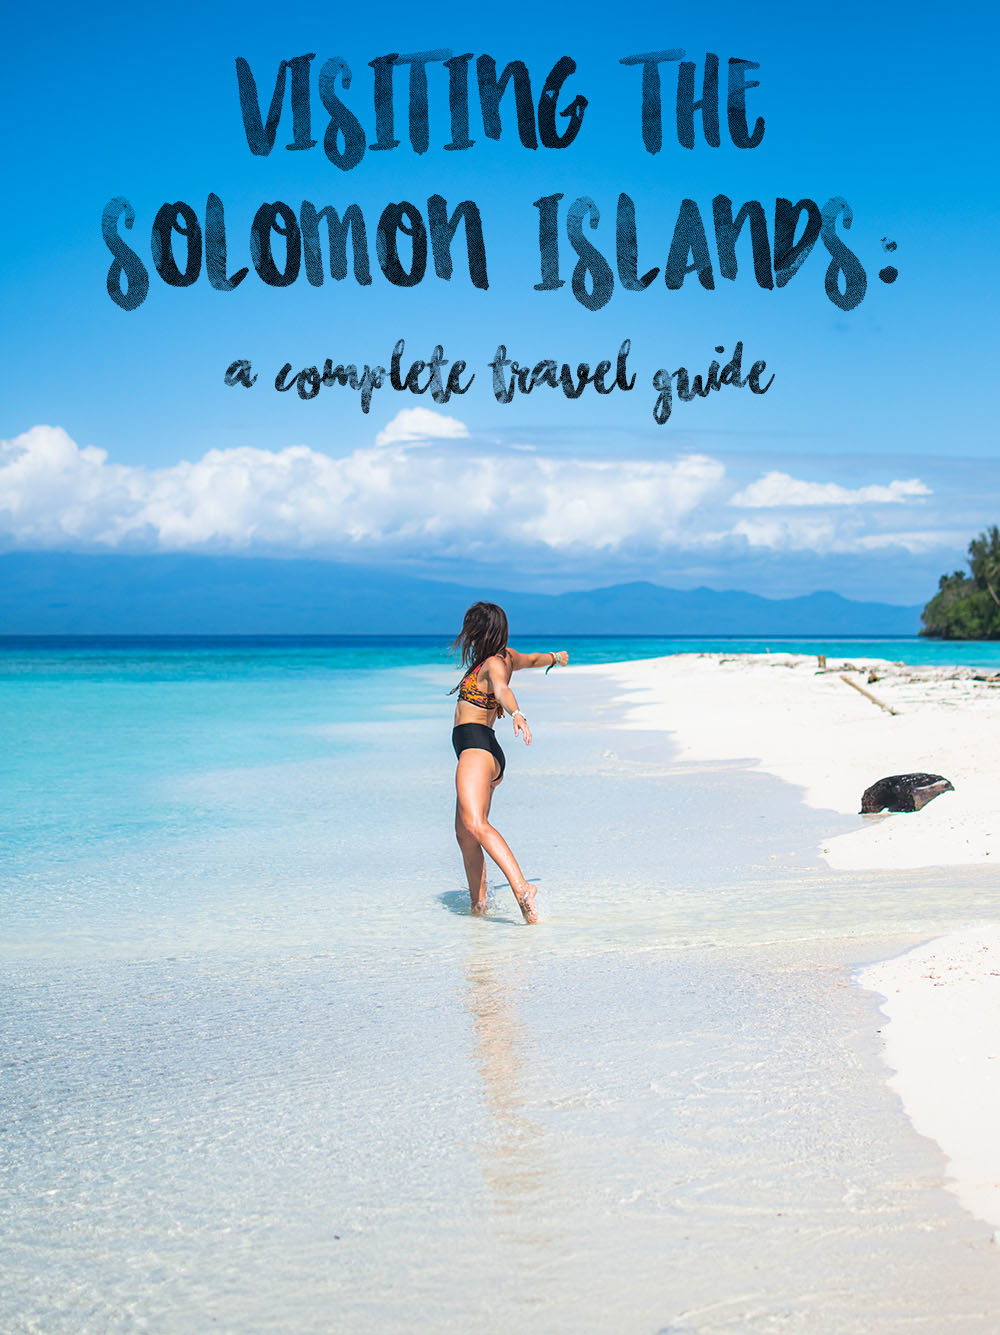 a complete guide to solomon islands tourism: facts, tips, where to go, things to do, where to stay, histopry, what to know before ou go, how to get there, getting around, and more.